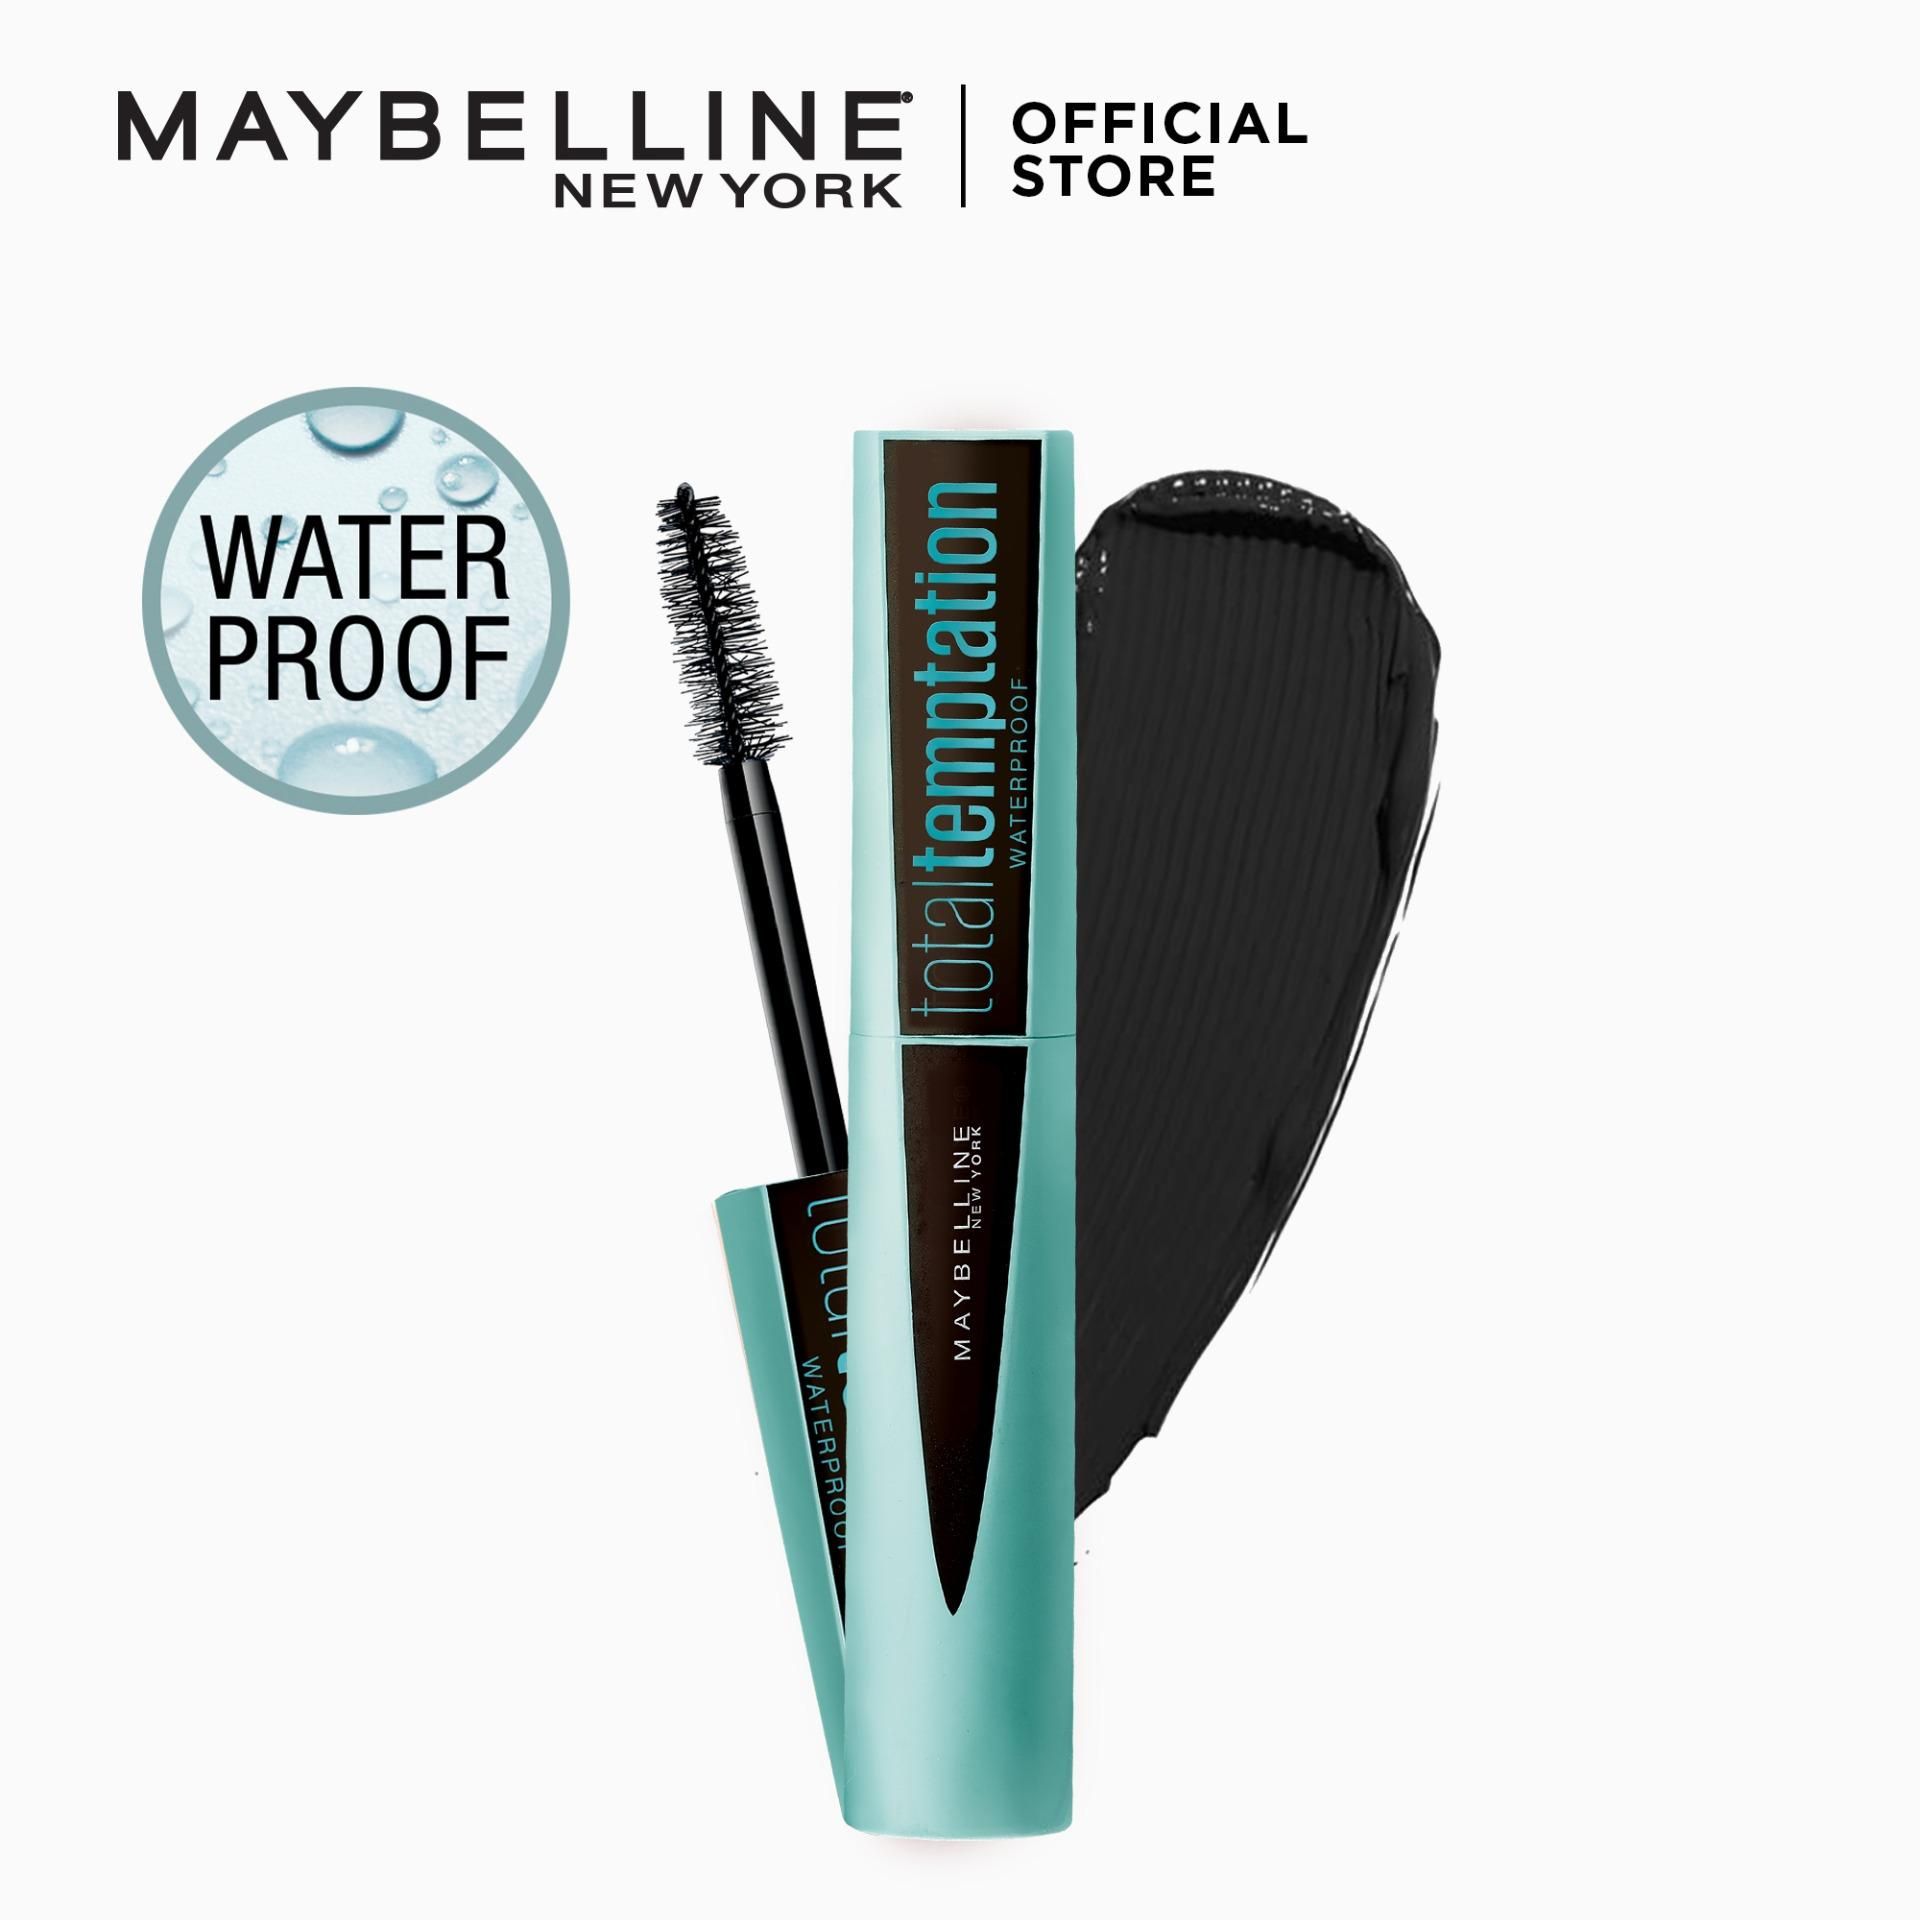 7705c5a06f9 Maybelline Philippines - Maybelline Mascara for sale - prices ...